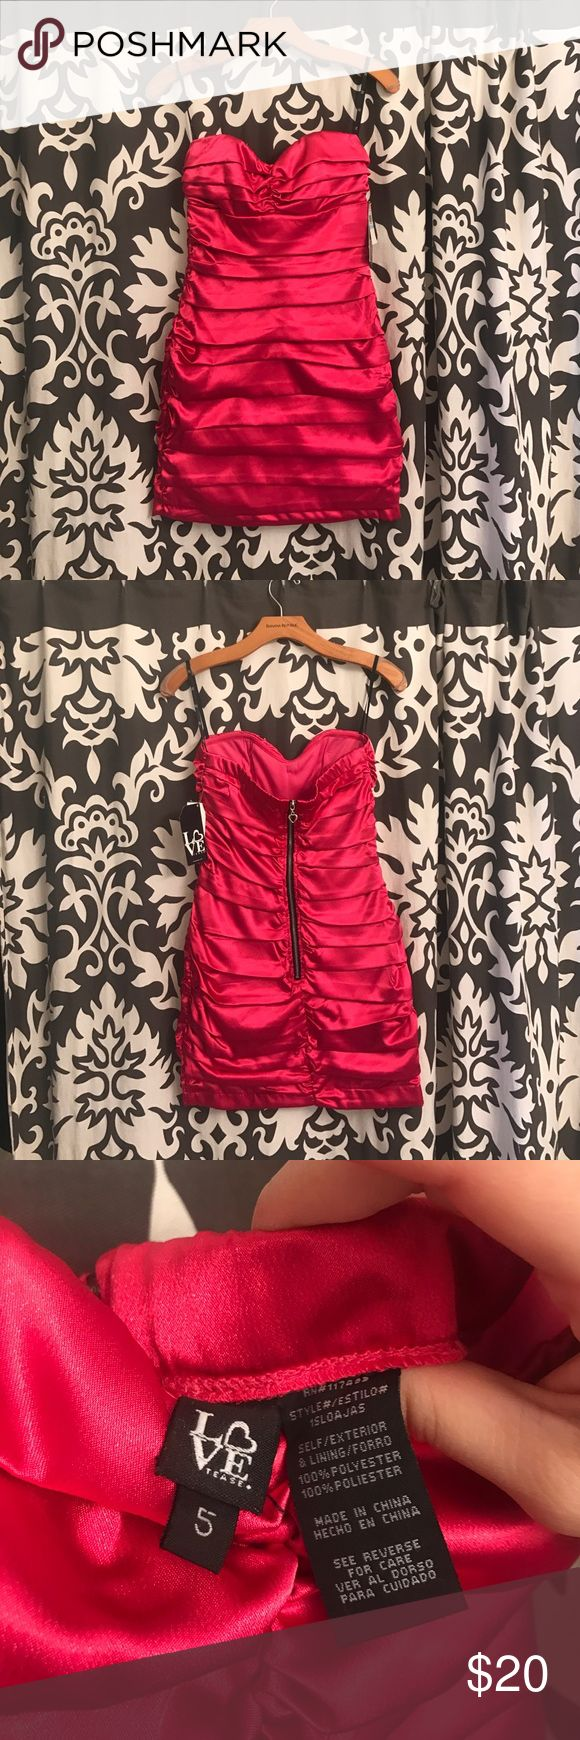 Pink layered dress Hot pink strapless dress | perfect for a bachelorette party or night out | size 5 | nwt | zipped back Love Dresses Mini